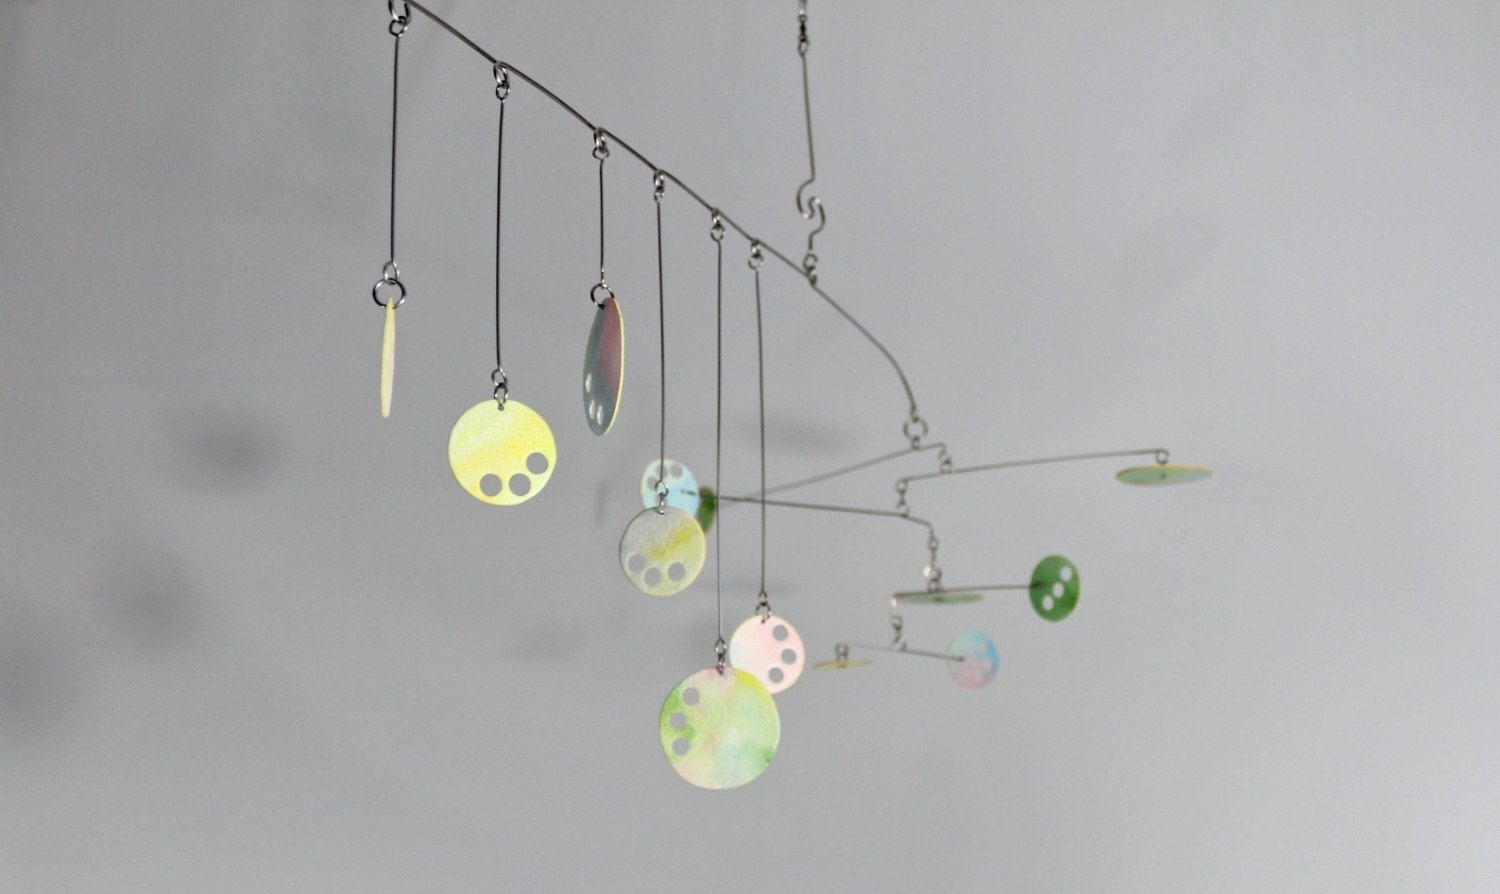 Custom Pastel Mobile - Circle Play - Kinetic Mobile Sculpture - Calder Style by Skysetter ...